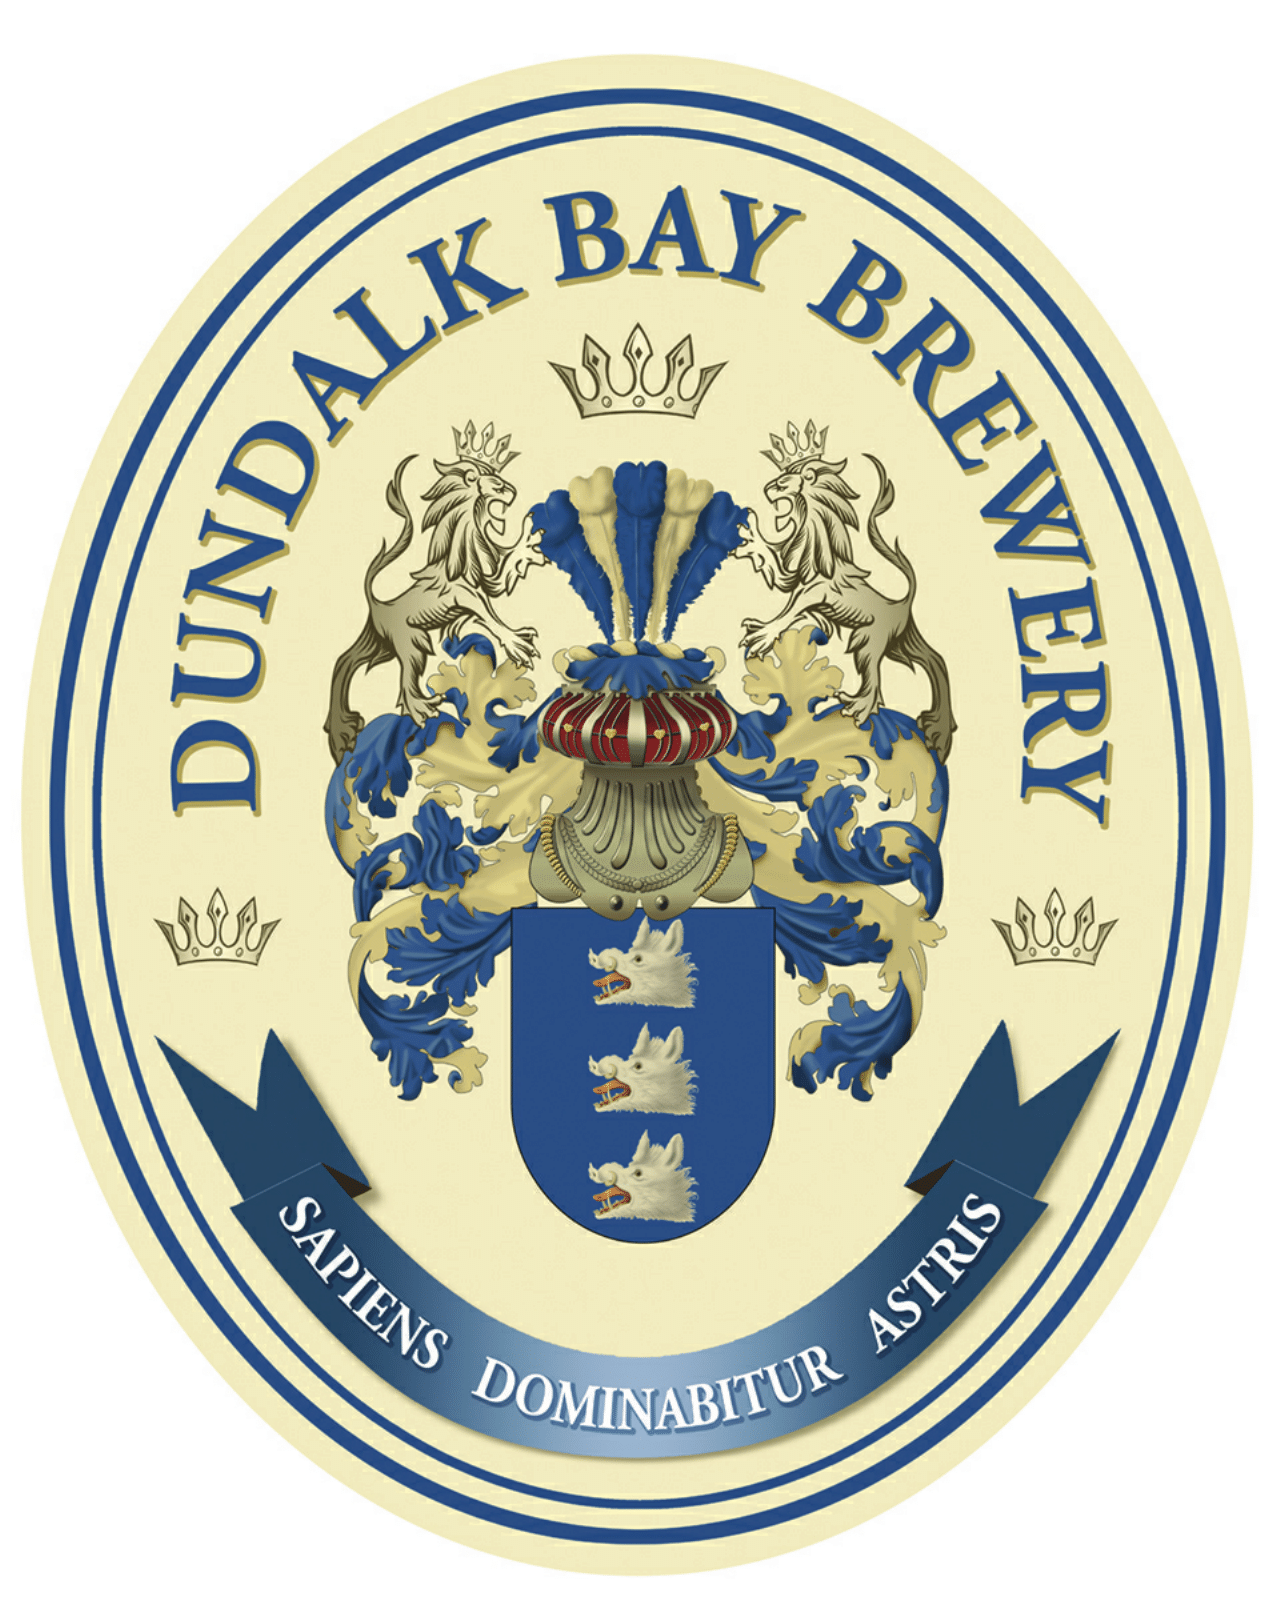 Image of Dundalk Bay Brewery Co logotype